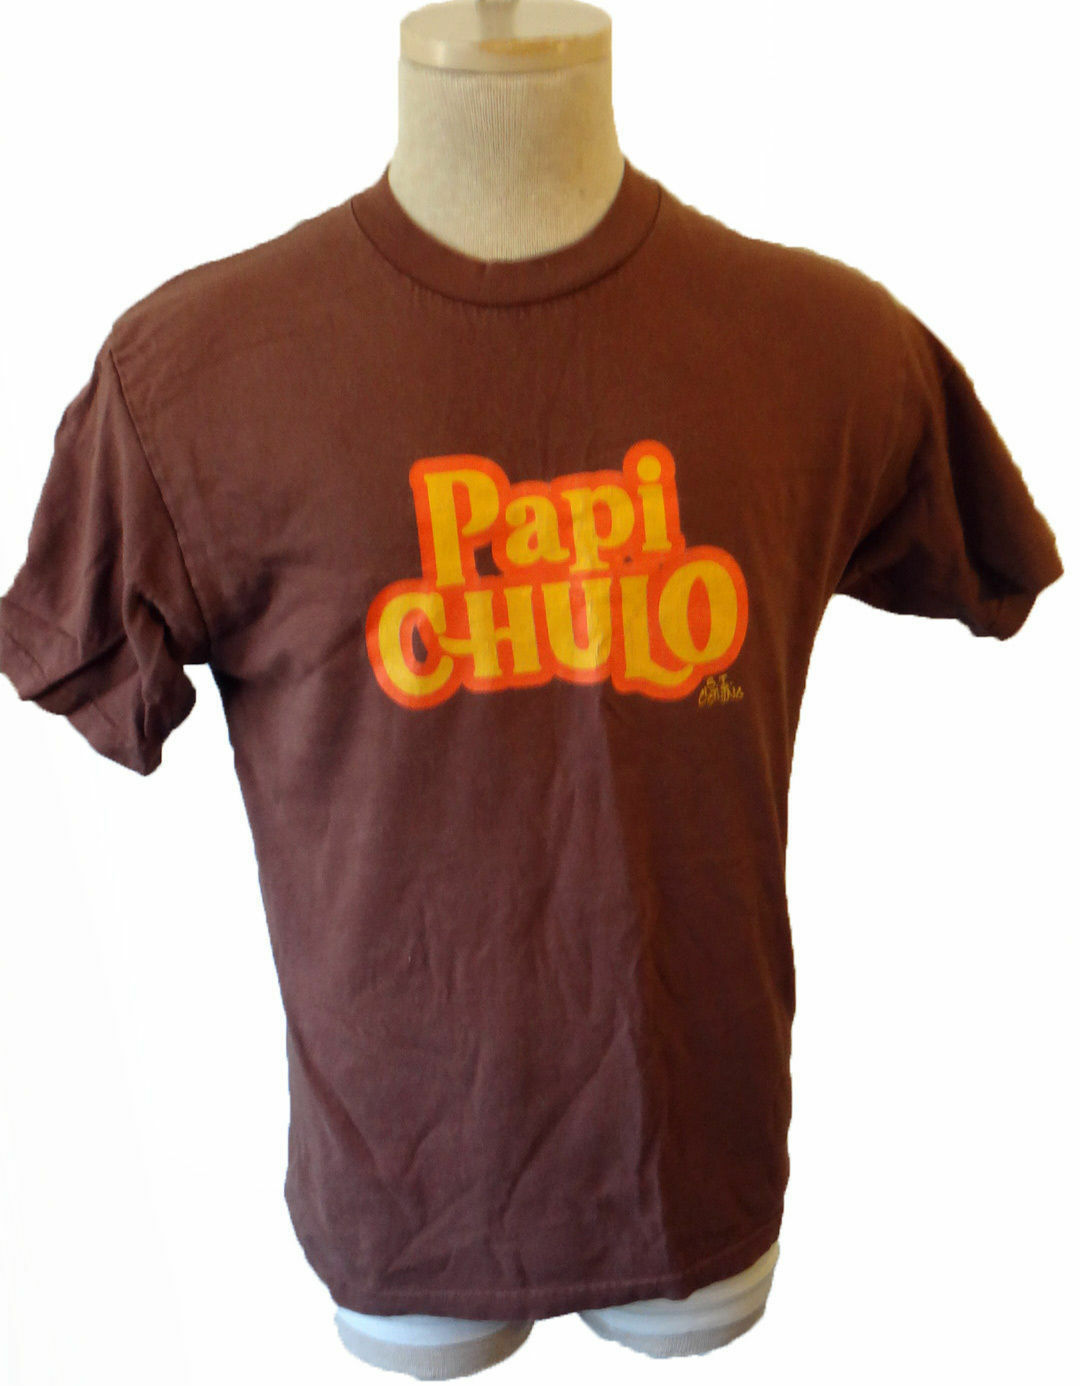 Spanish Papi Chulo Mac daddy translation big father medium vtg tee mexican med